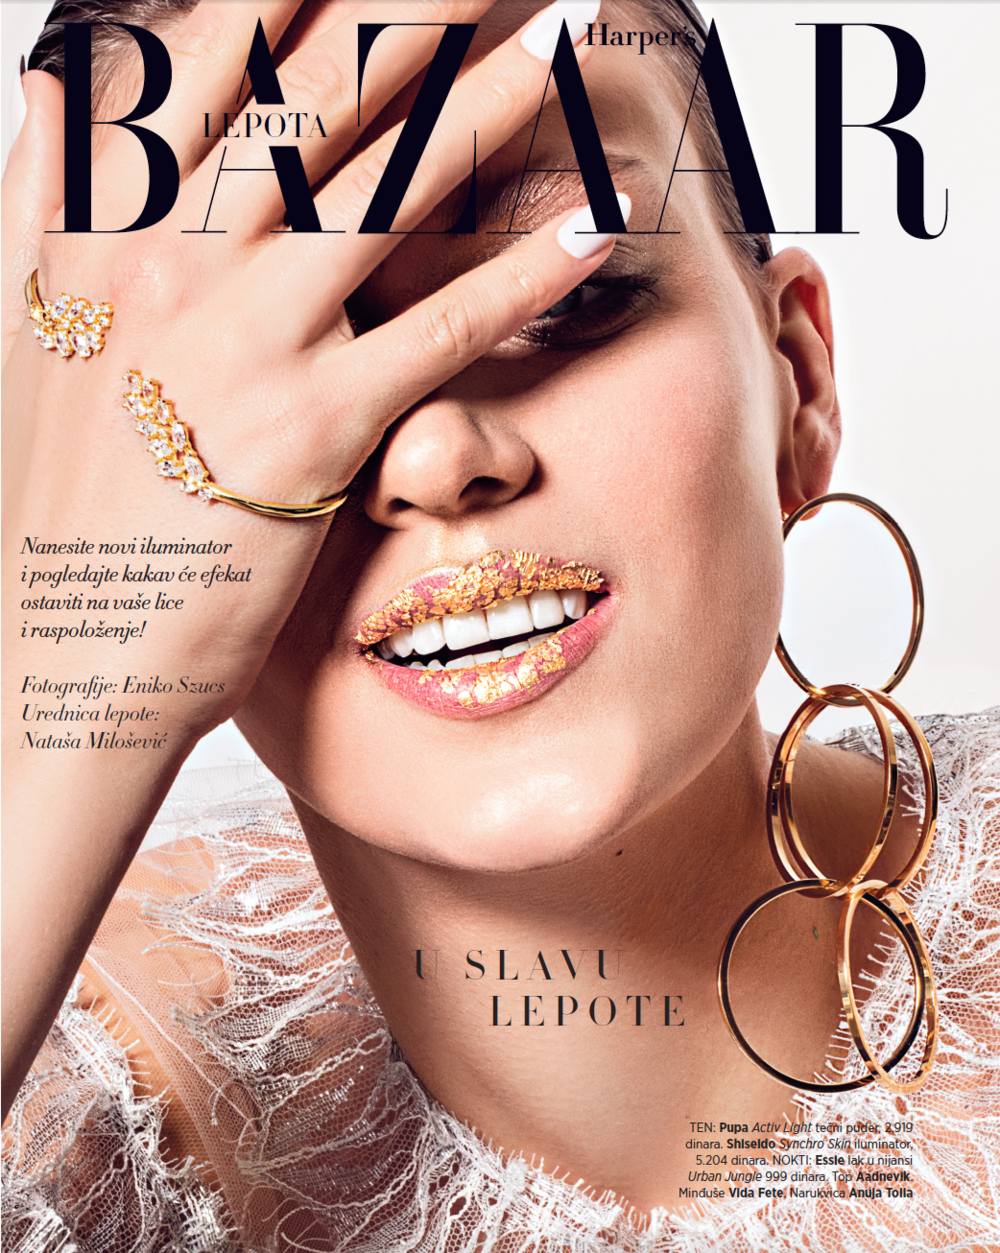 Screen Shot 2018-04-25 at 9.37.37 PM.png